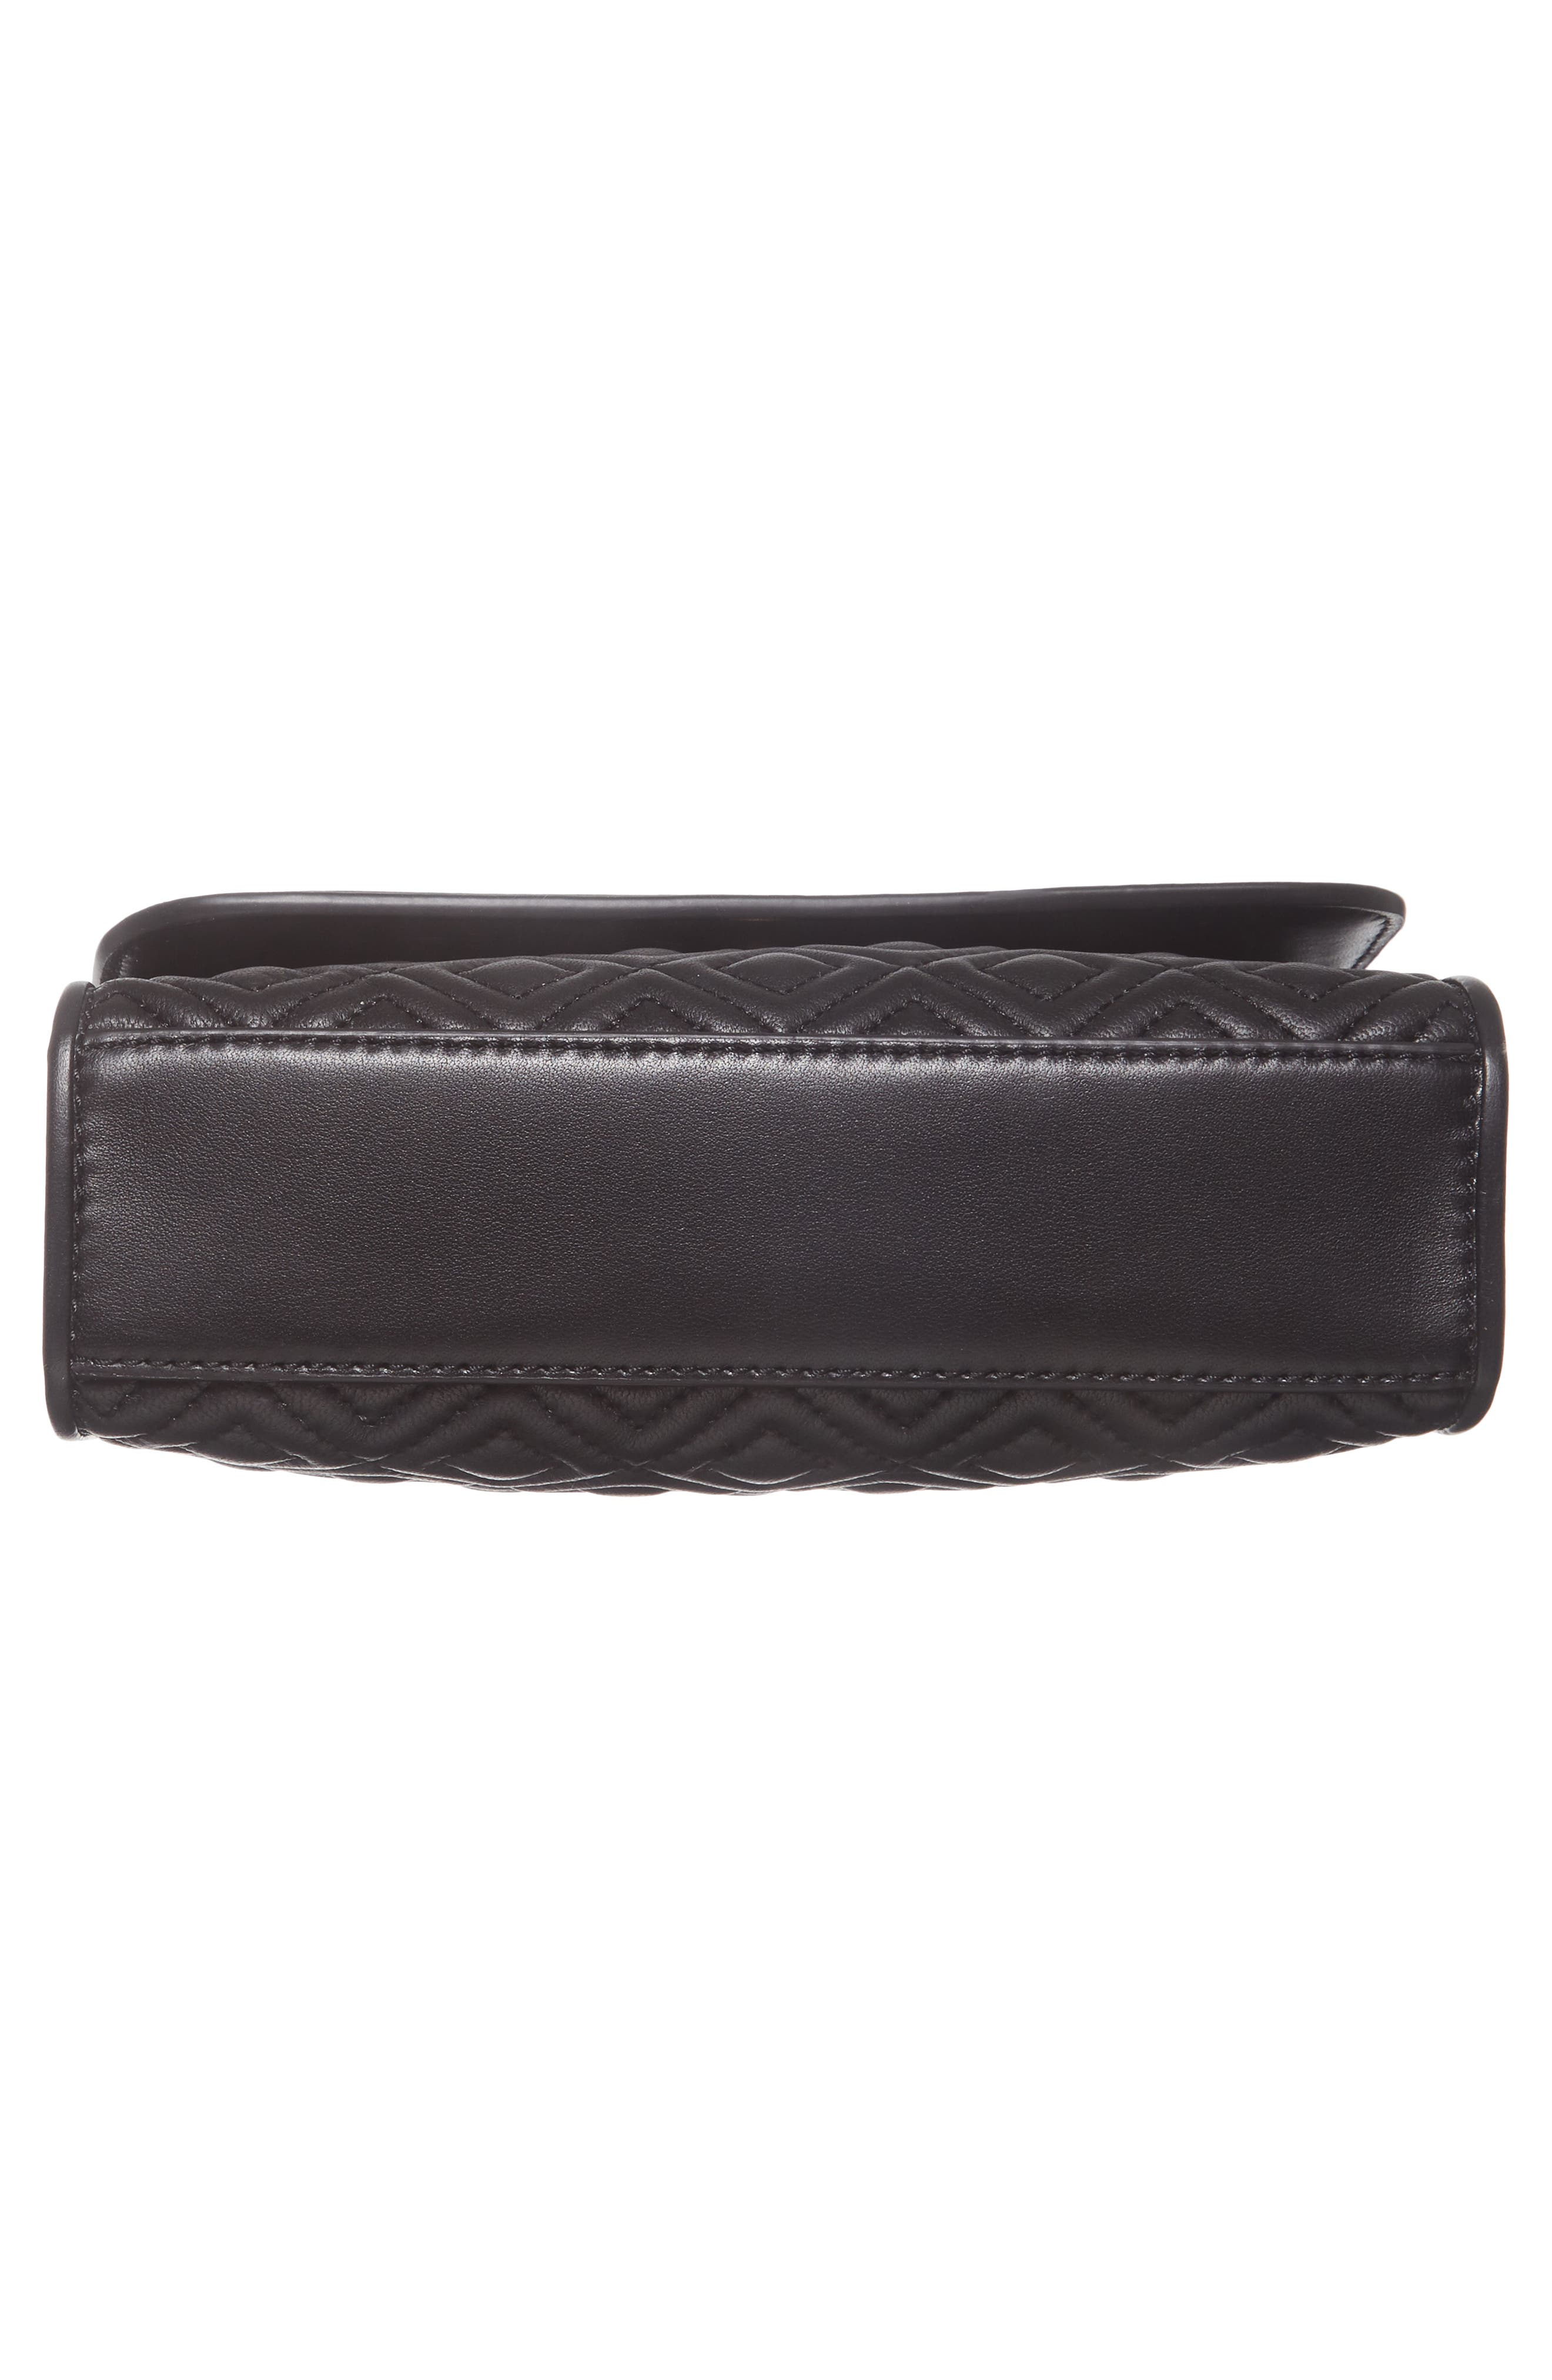 TORY BURCH, Small Fleming Leather Convertible Shoulder Bag, Alternate thumbnail 7, color, BLACK